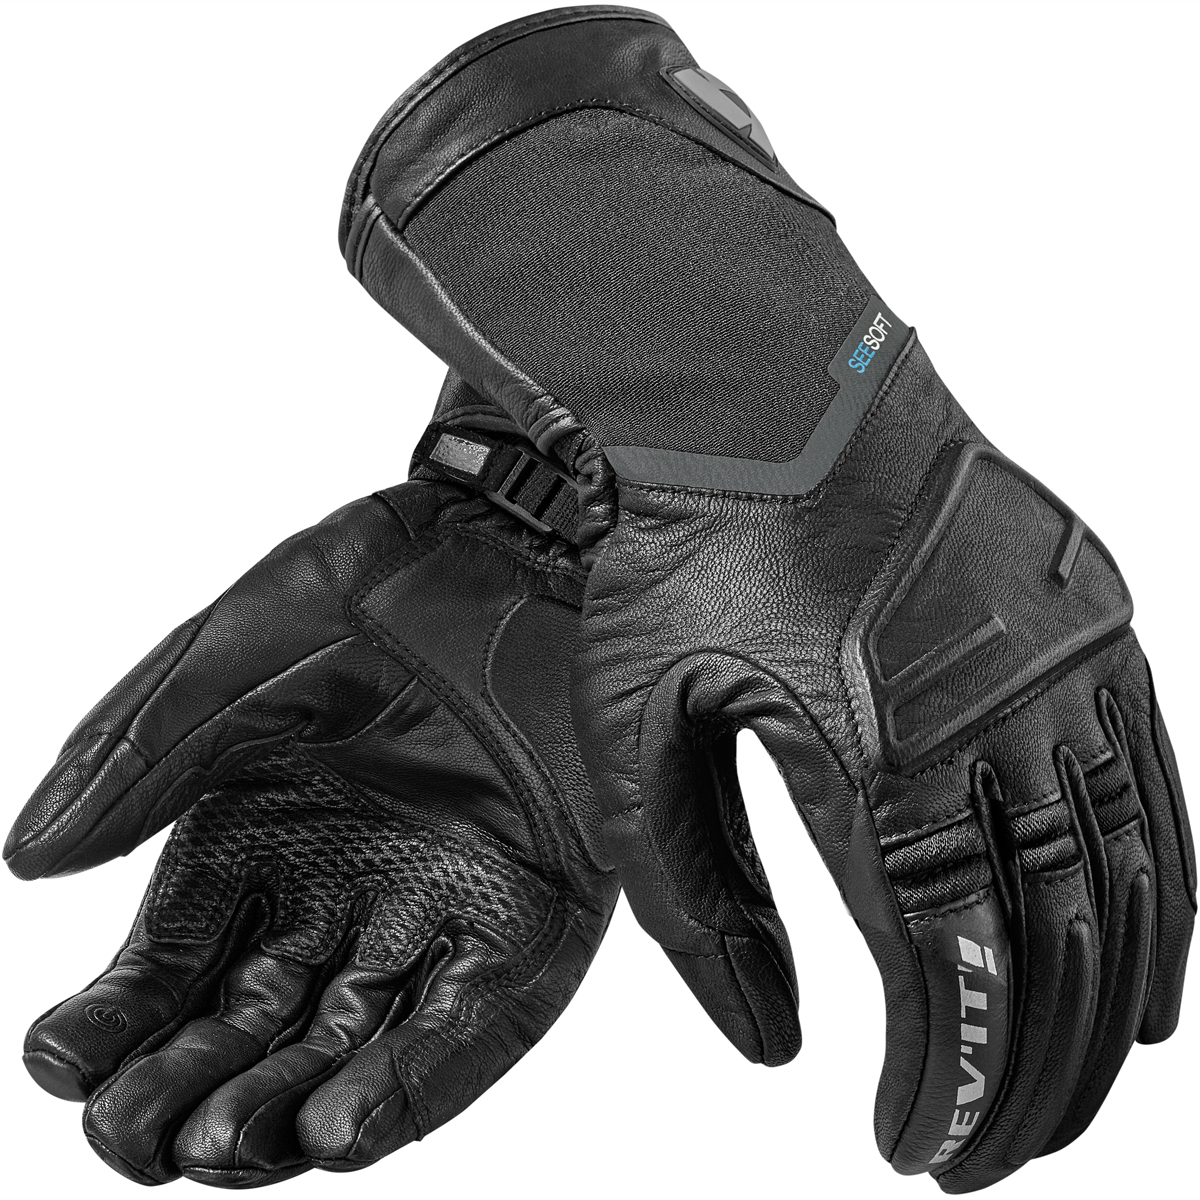 Top 10 summer gloves in association with GetGeared